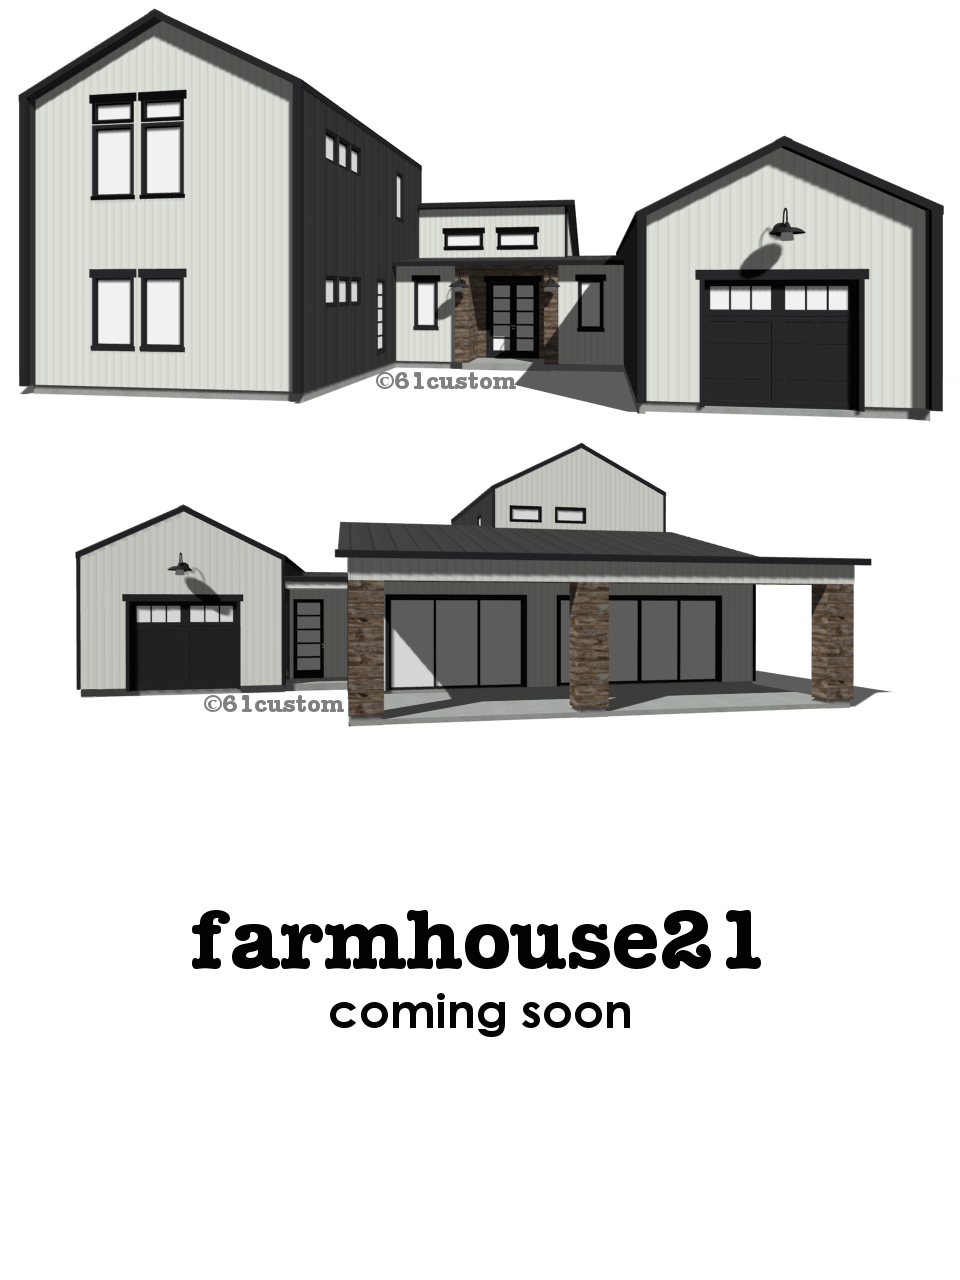 Farmhouse21 modern house plan 61custom contemporary for Contemporary farmhouse floor plans